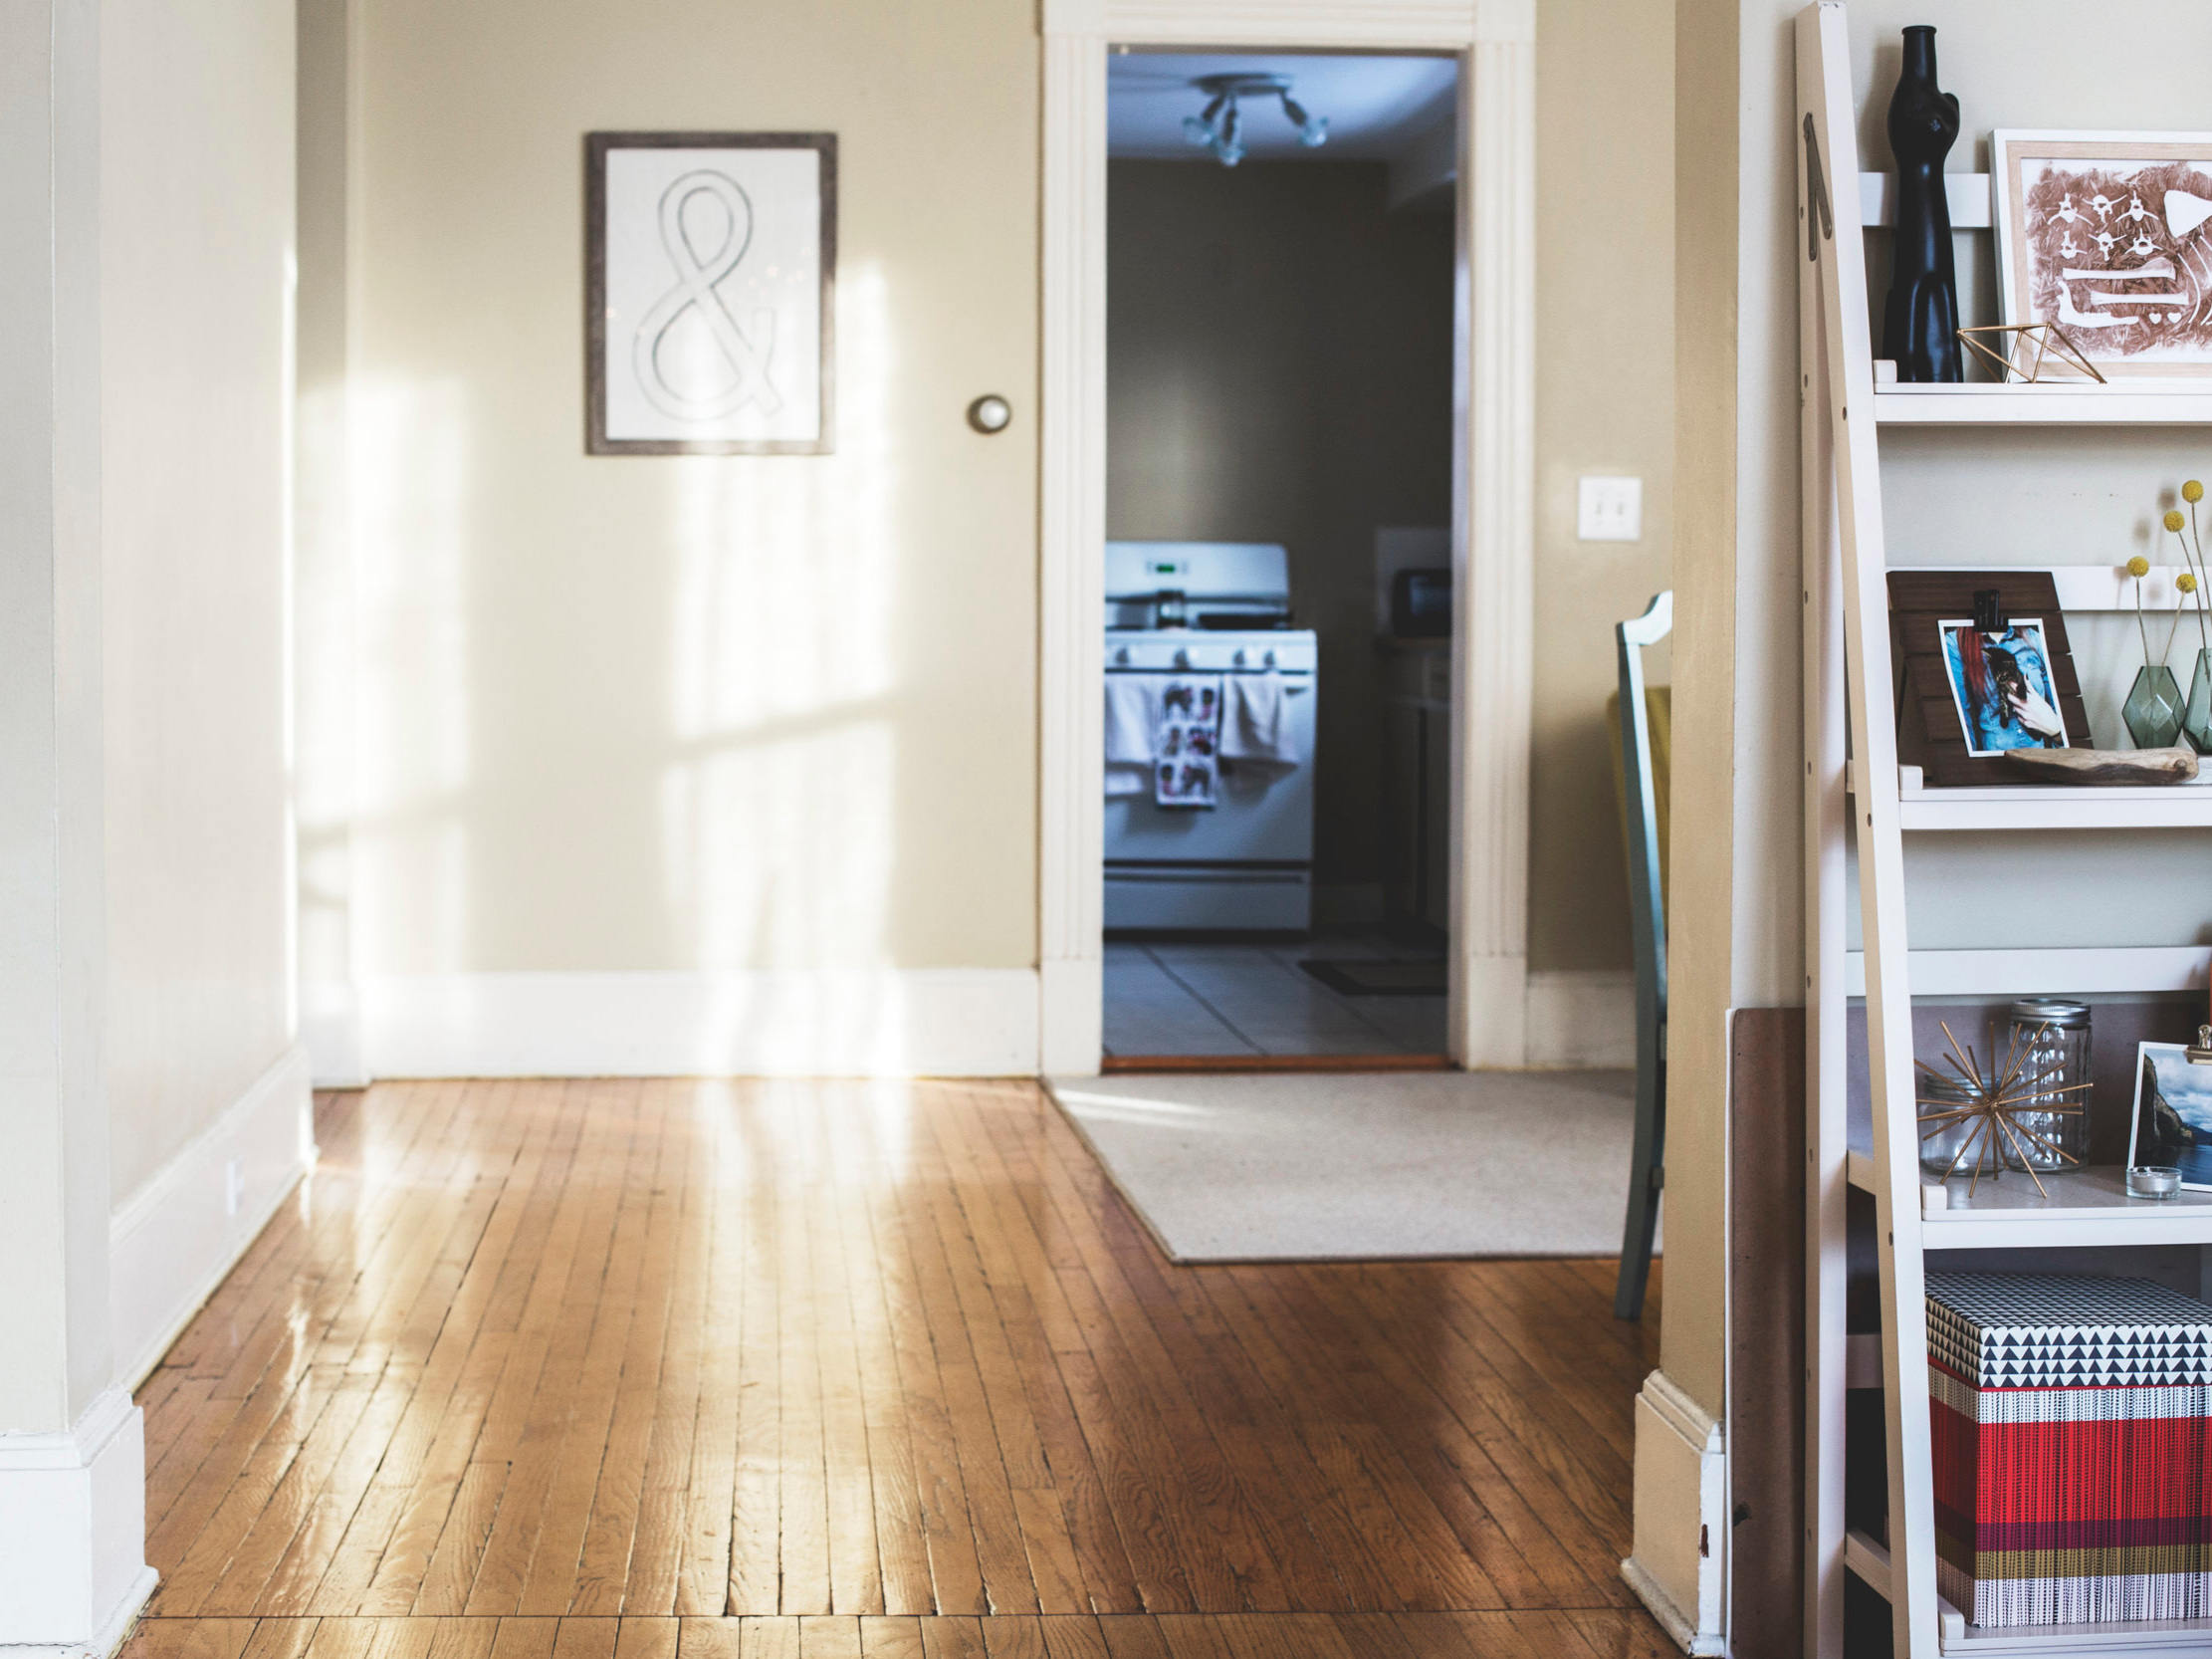 Floors - Whether we're laying ceramic floor tile in your kitchen, installing hardwood floors in your living room, HANDYMACK has the team and experience to complete the task to the standards you expect.